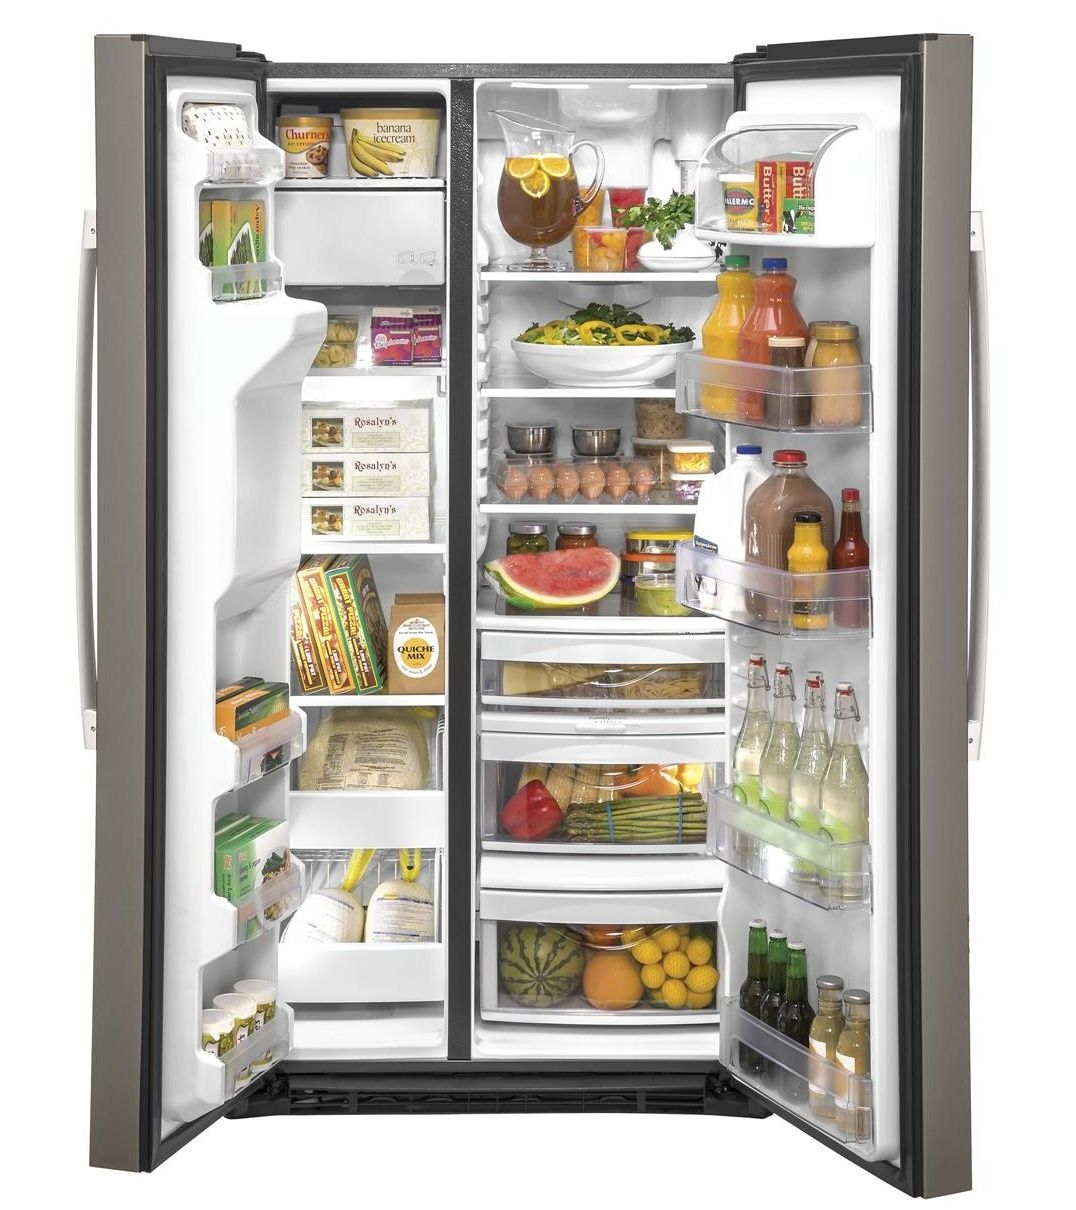 Gzs22imnes Ge 36 Quot Counter Depth Side By Side Refrigerator